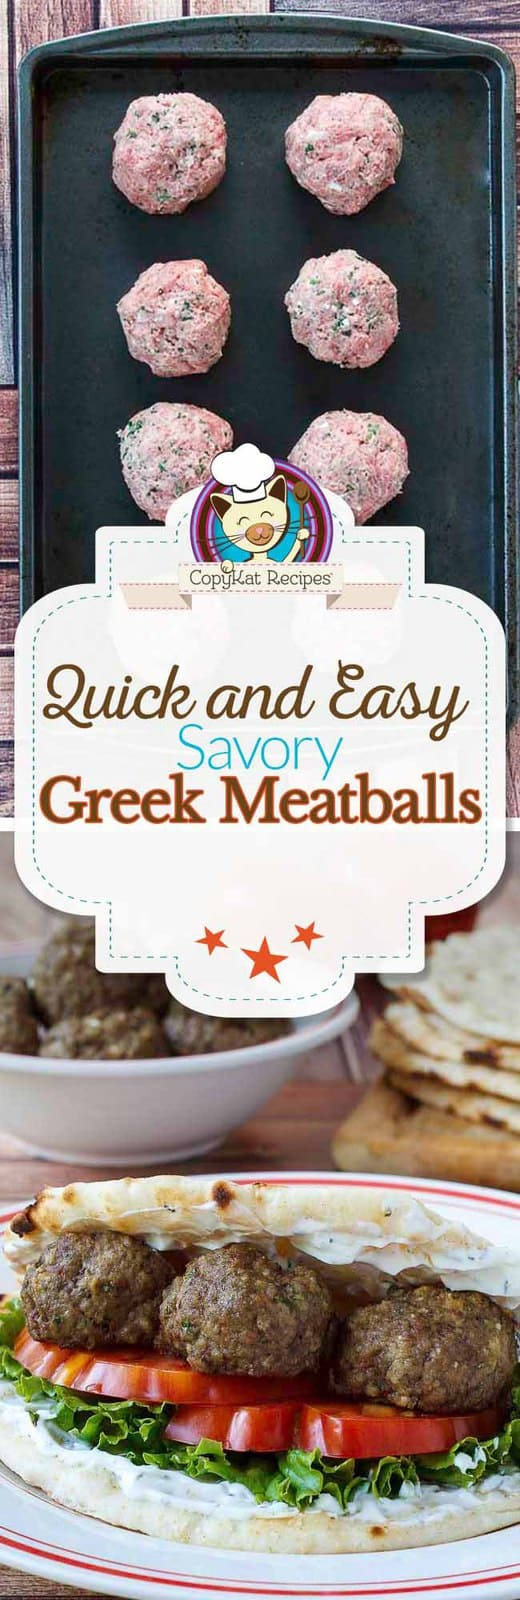 These Greek meatballs are so easy to prepare and so full of flavor. #HealthierSideofMayo